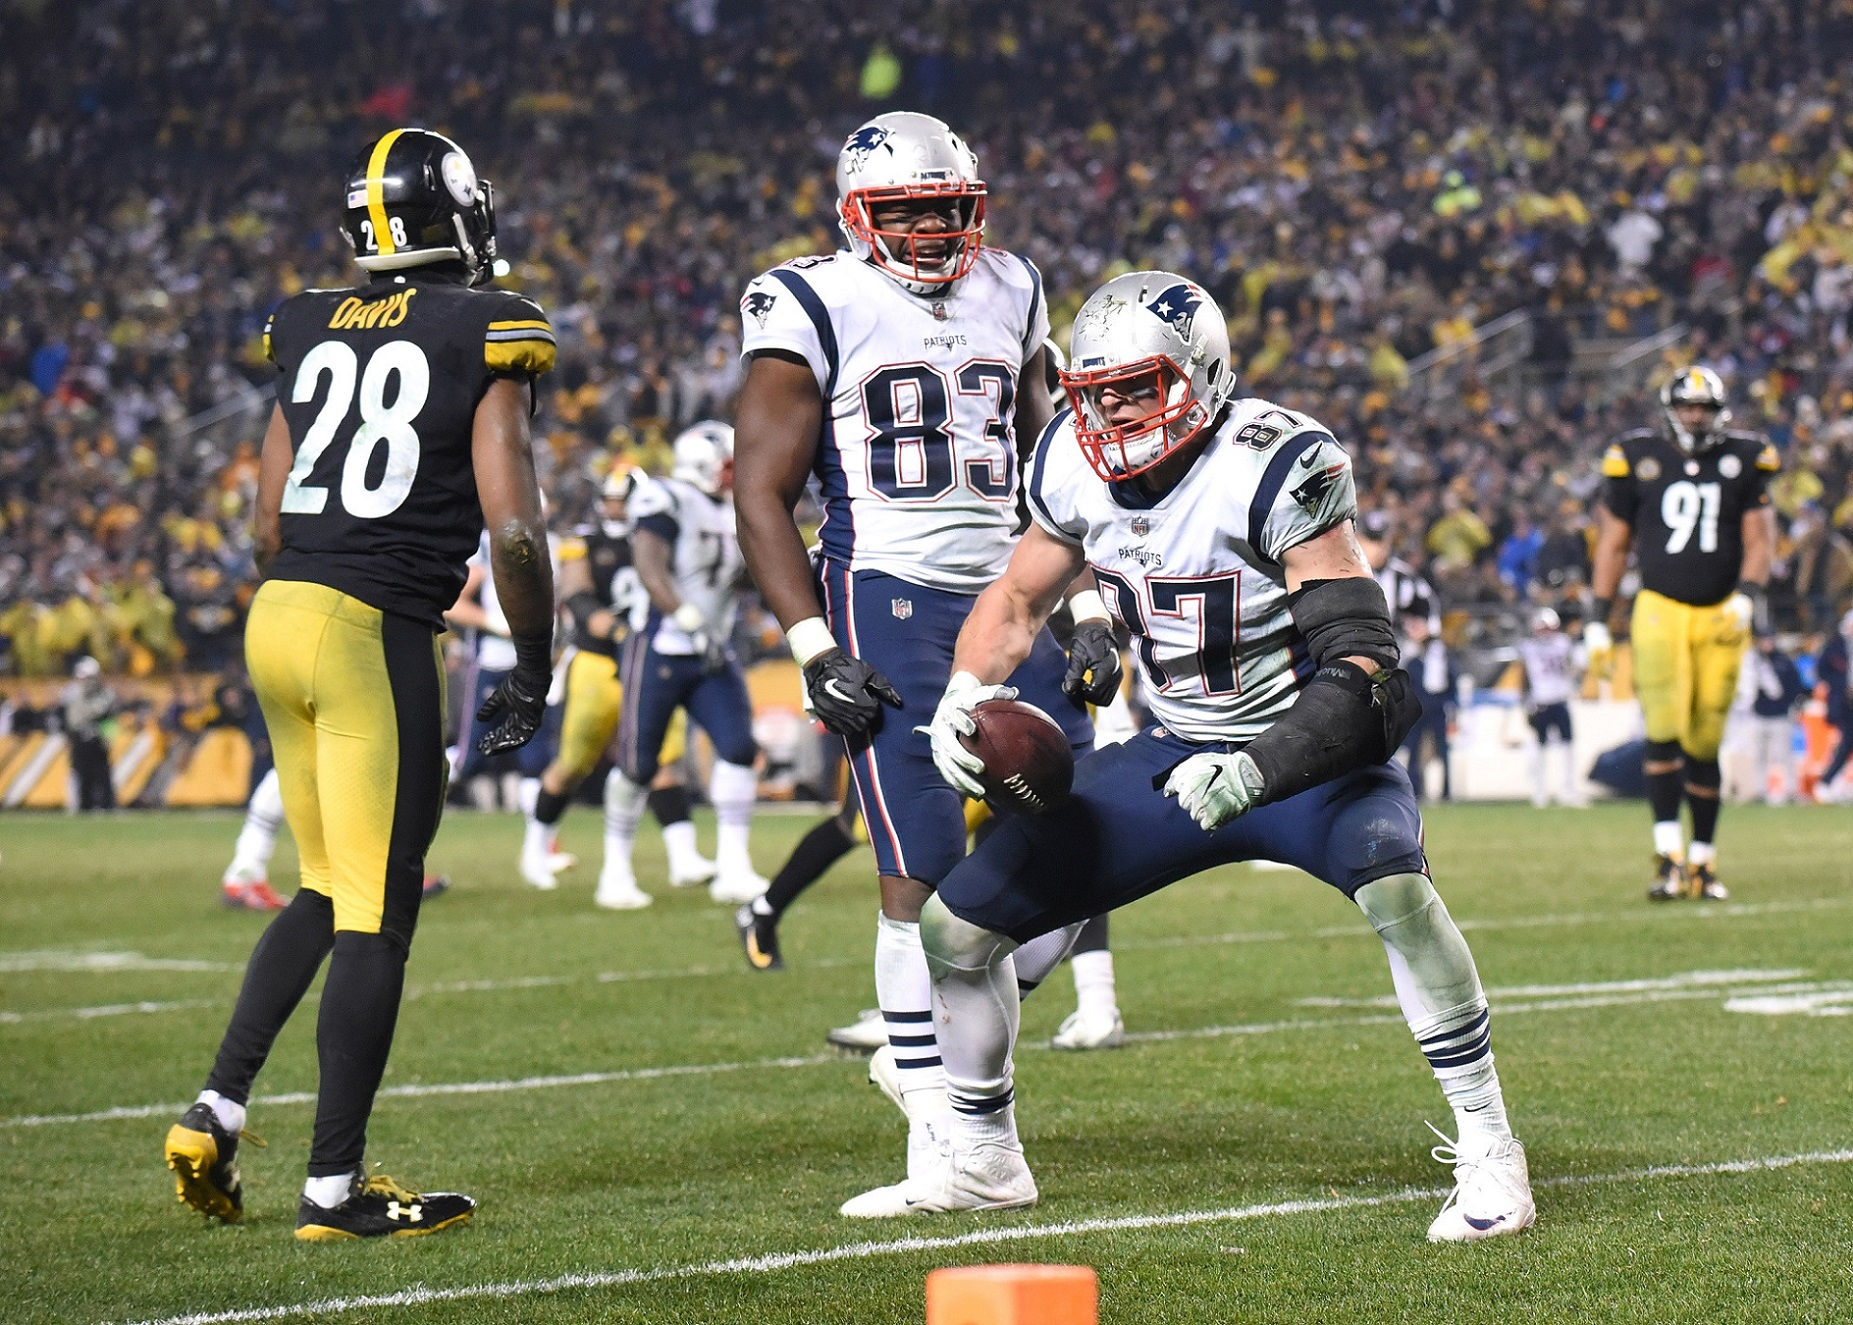 Dion Lewis was 'disappointed' with way he was used in Super Bowl